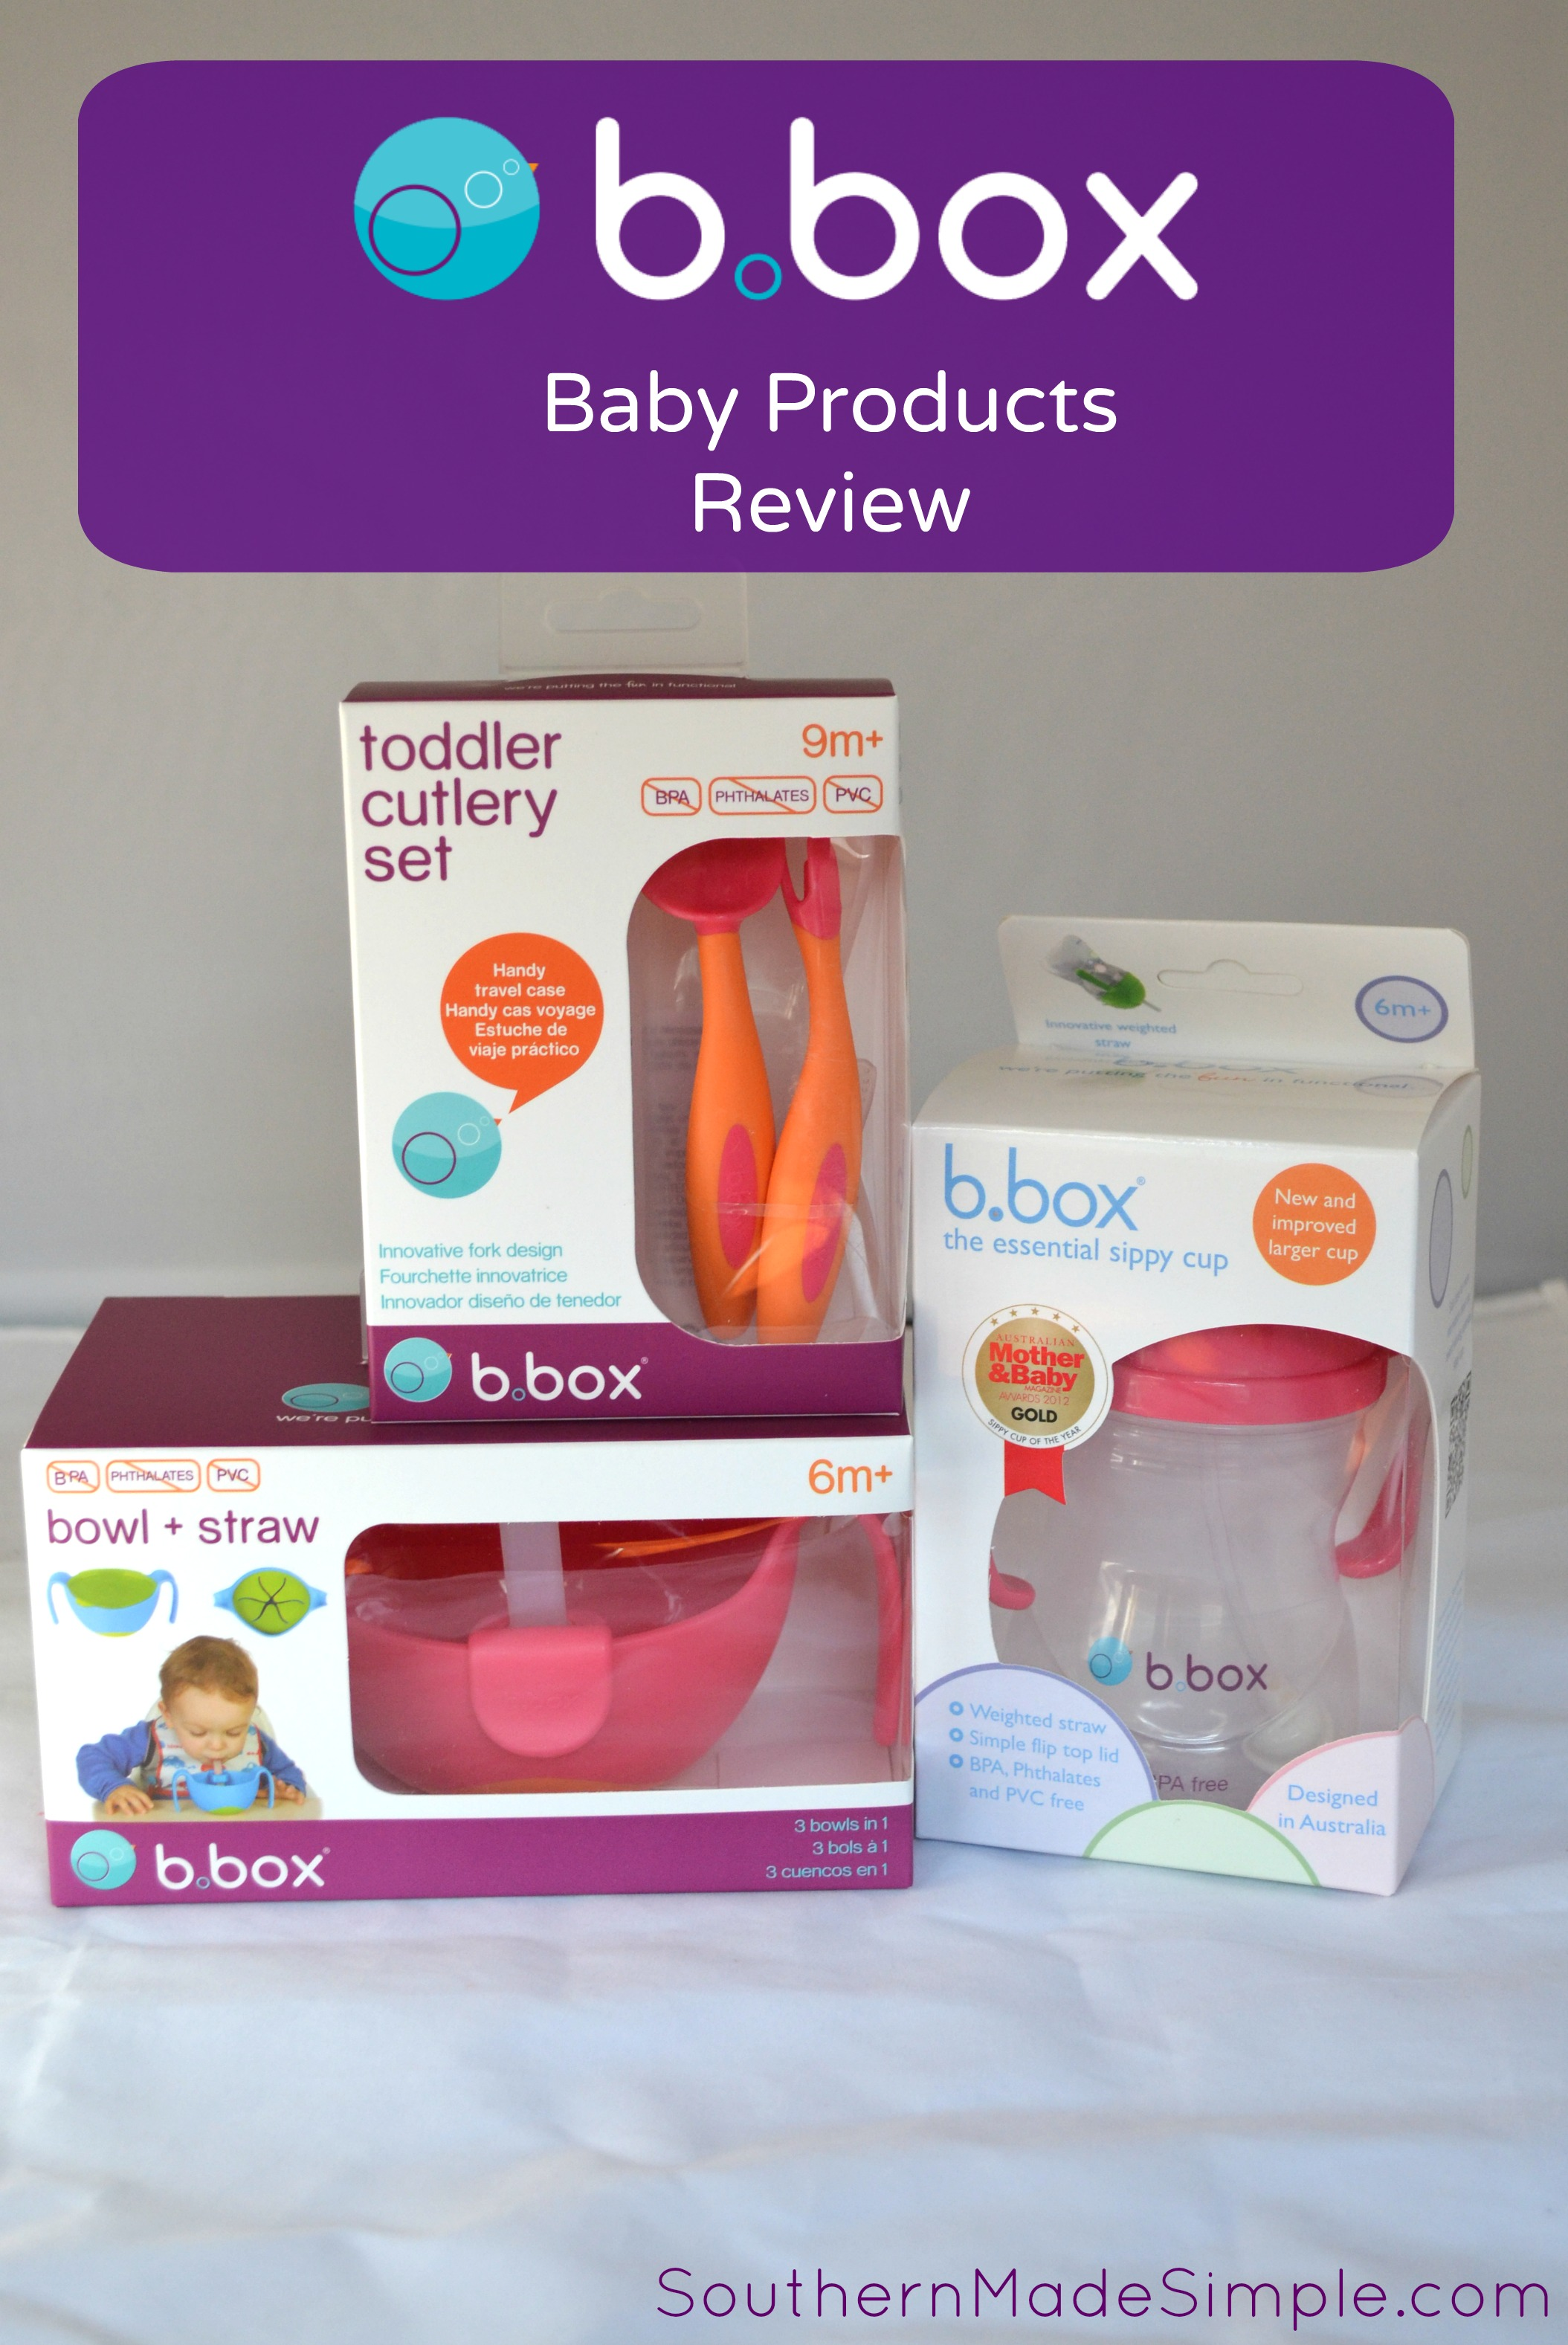 b.box puts the fun in functional during meal time! Review + giveaway! Ends 4/14